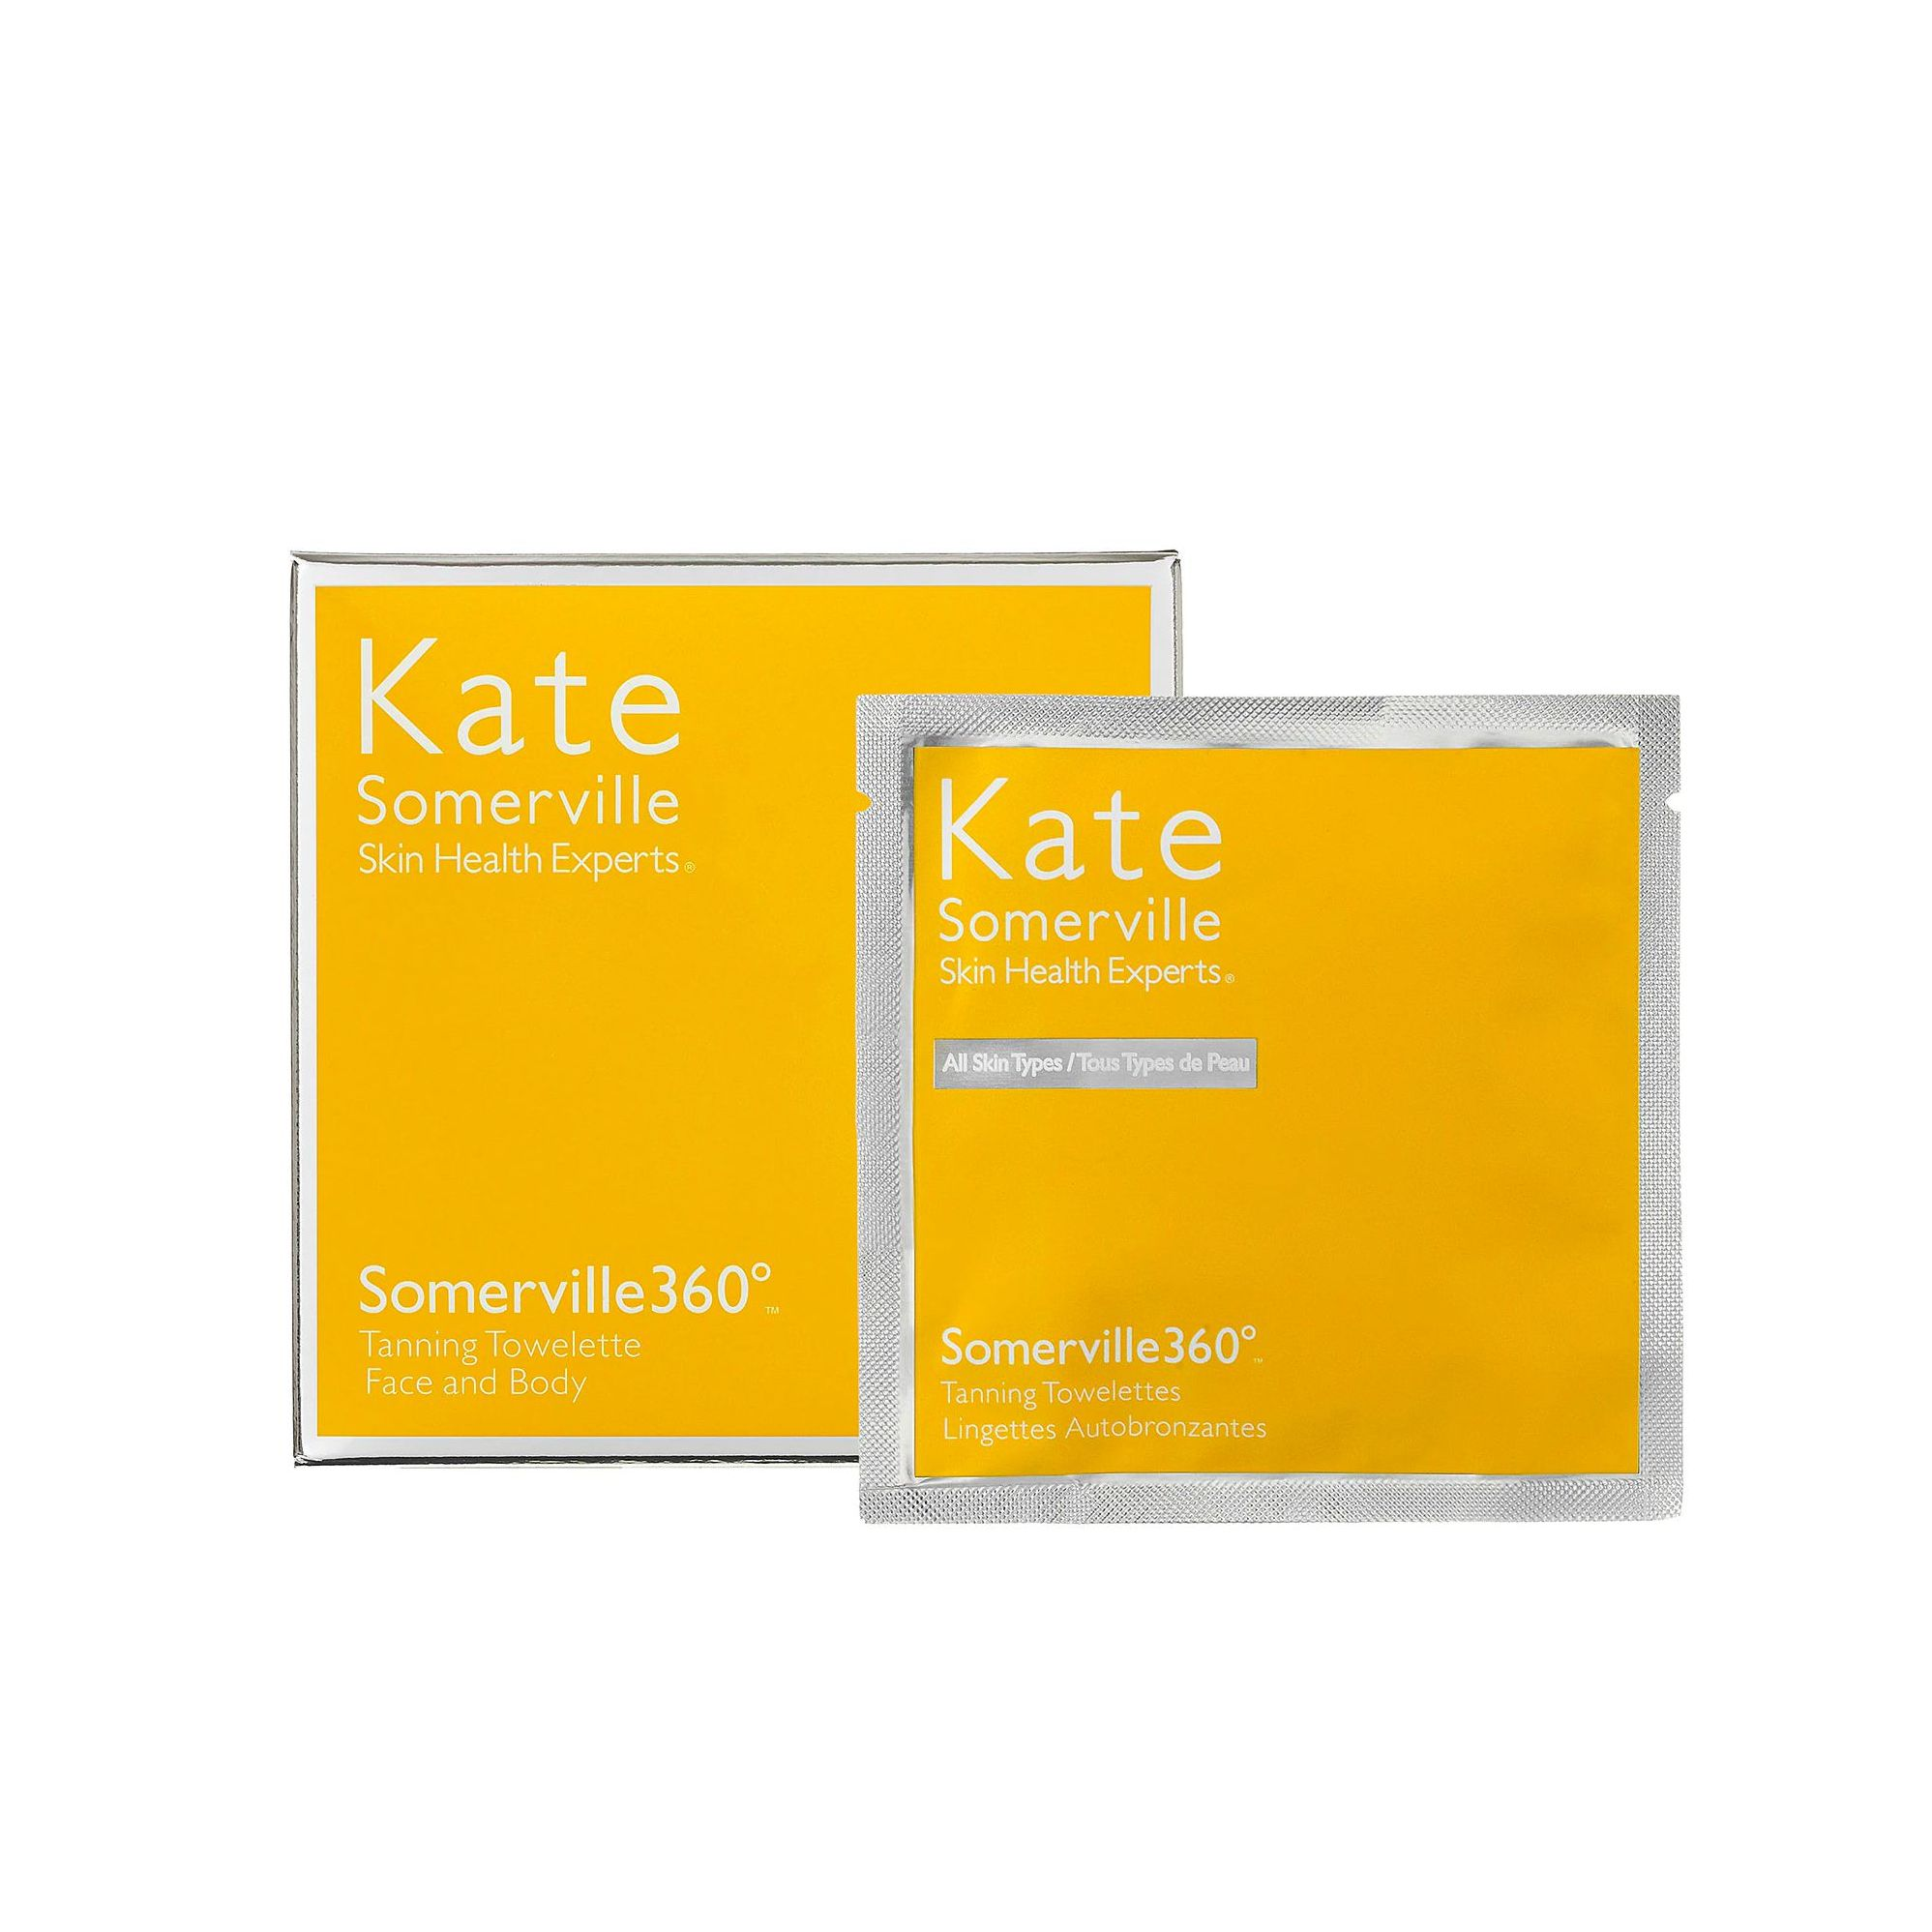 The Cult-Favorite Somerville 360° Tanning Towelettes Kate Somerville sephora.com $48.00 SHOP NOW It doesn't get easier than these self tanner towelettes. After swiping them all over, you'll notice an even tan within two to four hours.